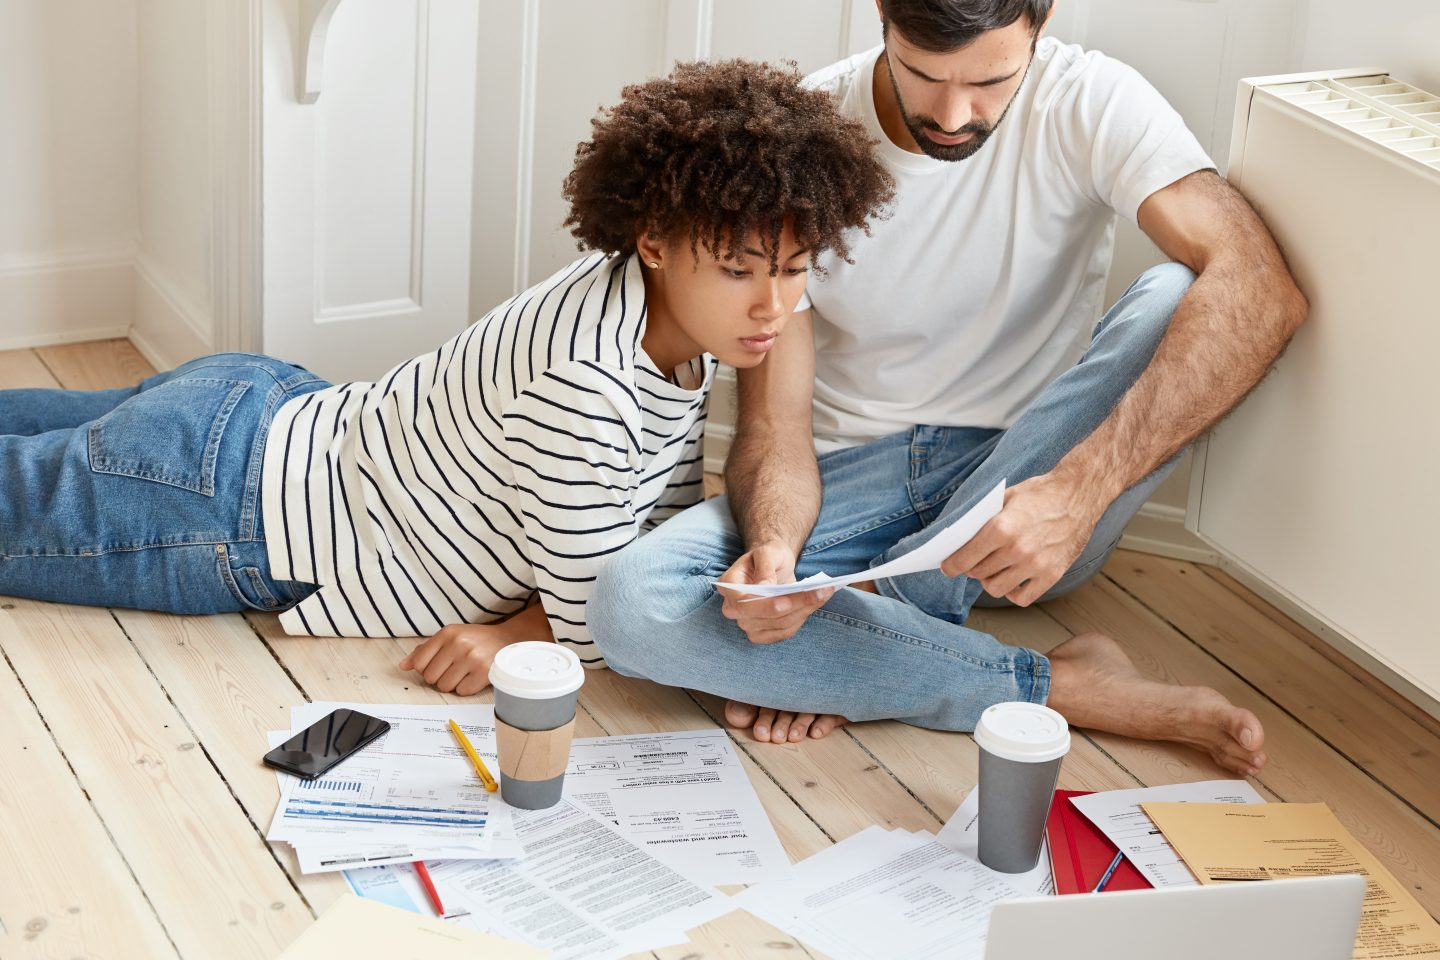 Family couple maintains home accounting, discuss plans and future payments, surrounded with bills on floor, dressed in domestic clothes, drinks tasty hot coffee, analyze income chart together Things you need to do before moving in with your special someone!